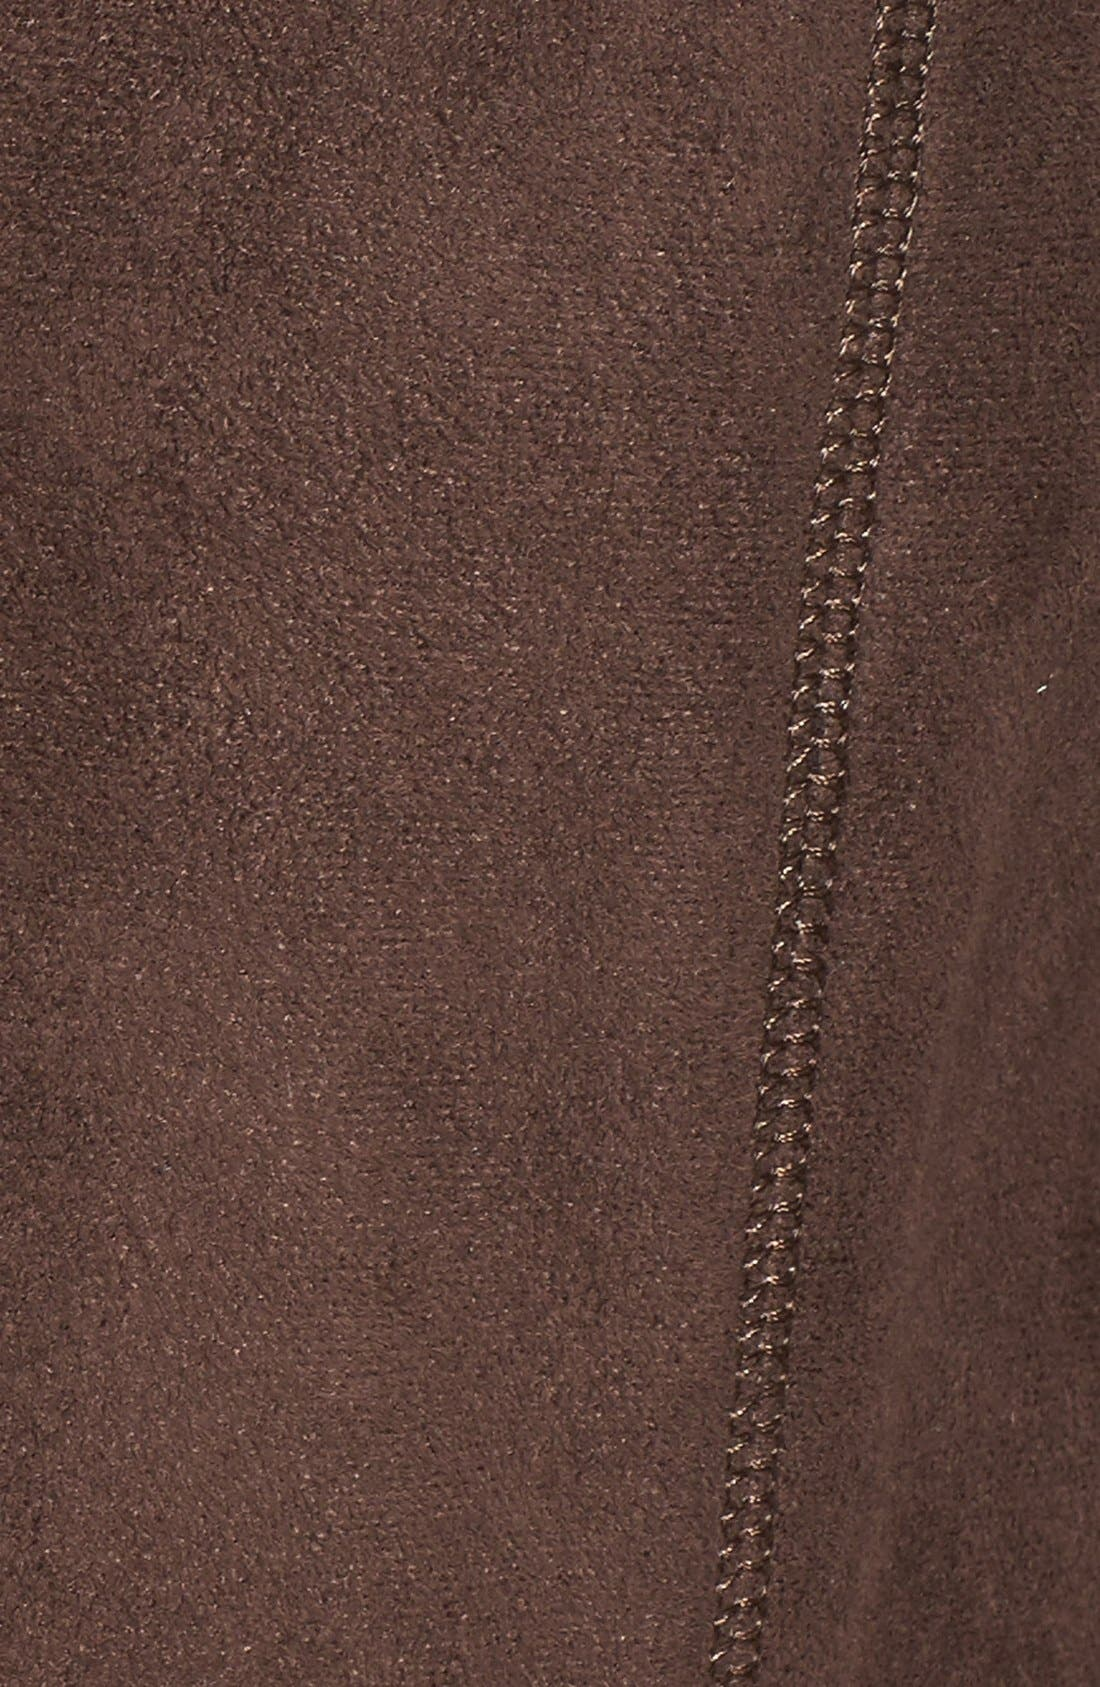 Hooded Faux Shearling Long A-Line Coat,                             Alternate thumbnail 5, color,                             Chocolate